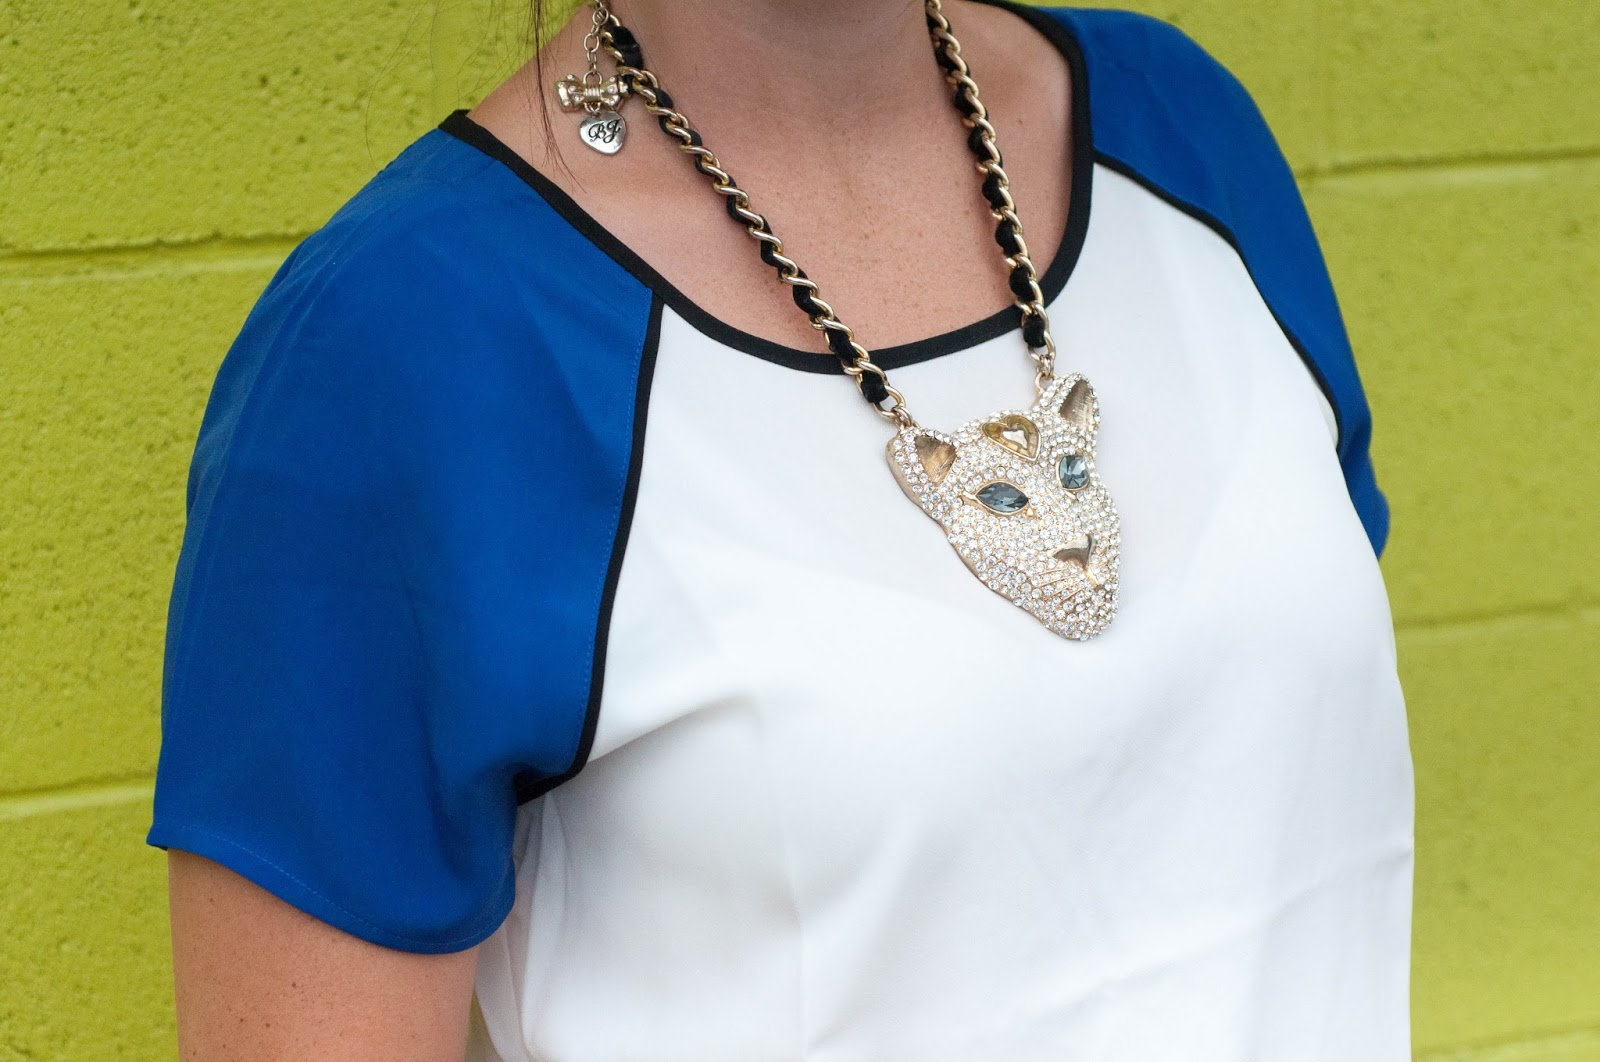 betsey johnson, jaguar necklace, animal head necklace, chunky necklace, forever 21, ootd